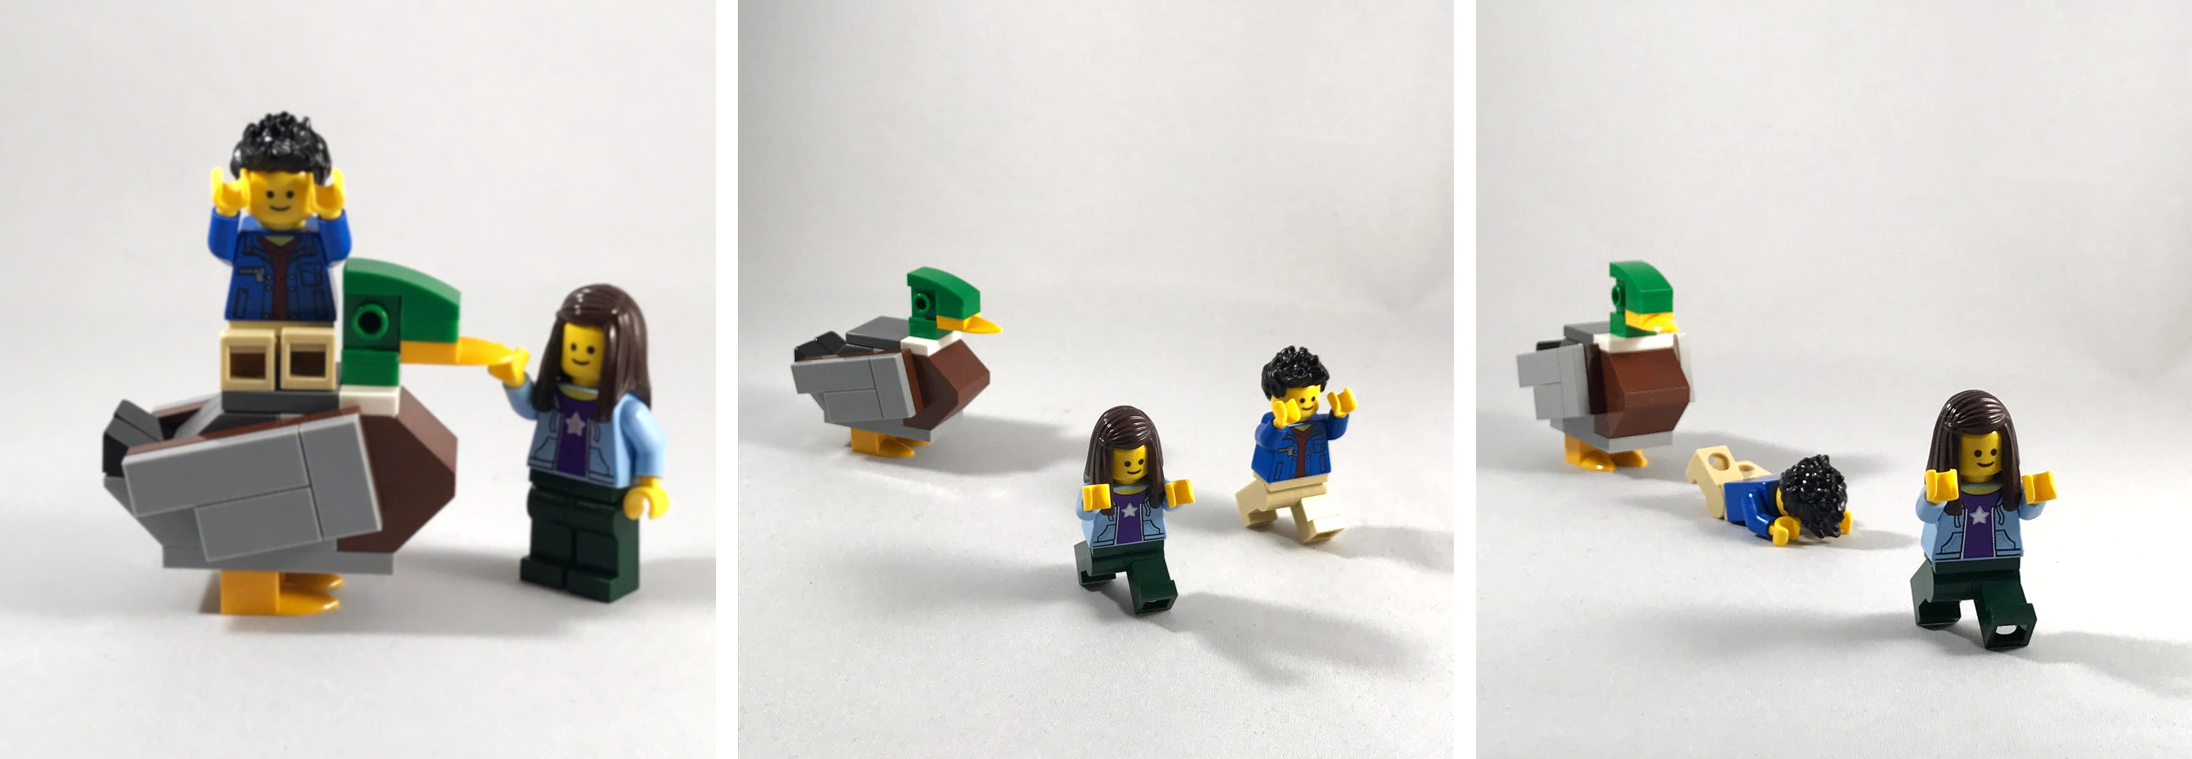 My friend  Lego Grad Student  and I fleeing from a giant duck, created for  Paluck lab .